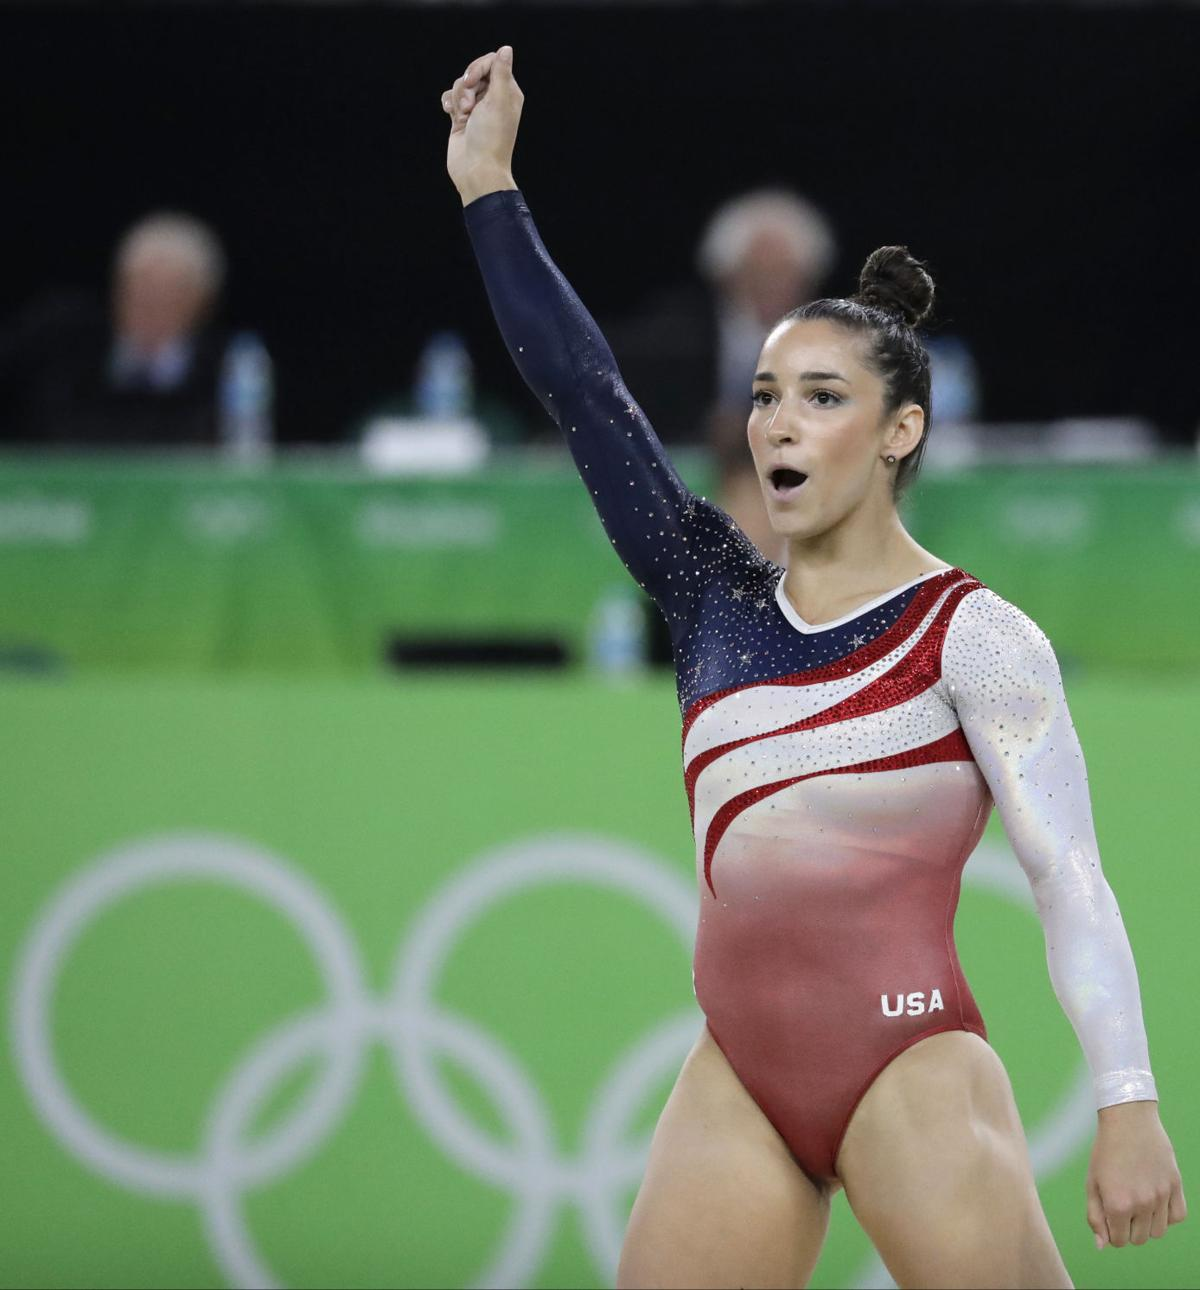 Olympic Gold Medalist Aly Raisman To Speak At Ethics